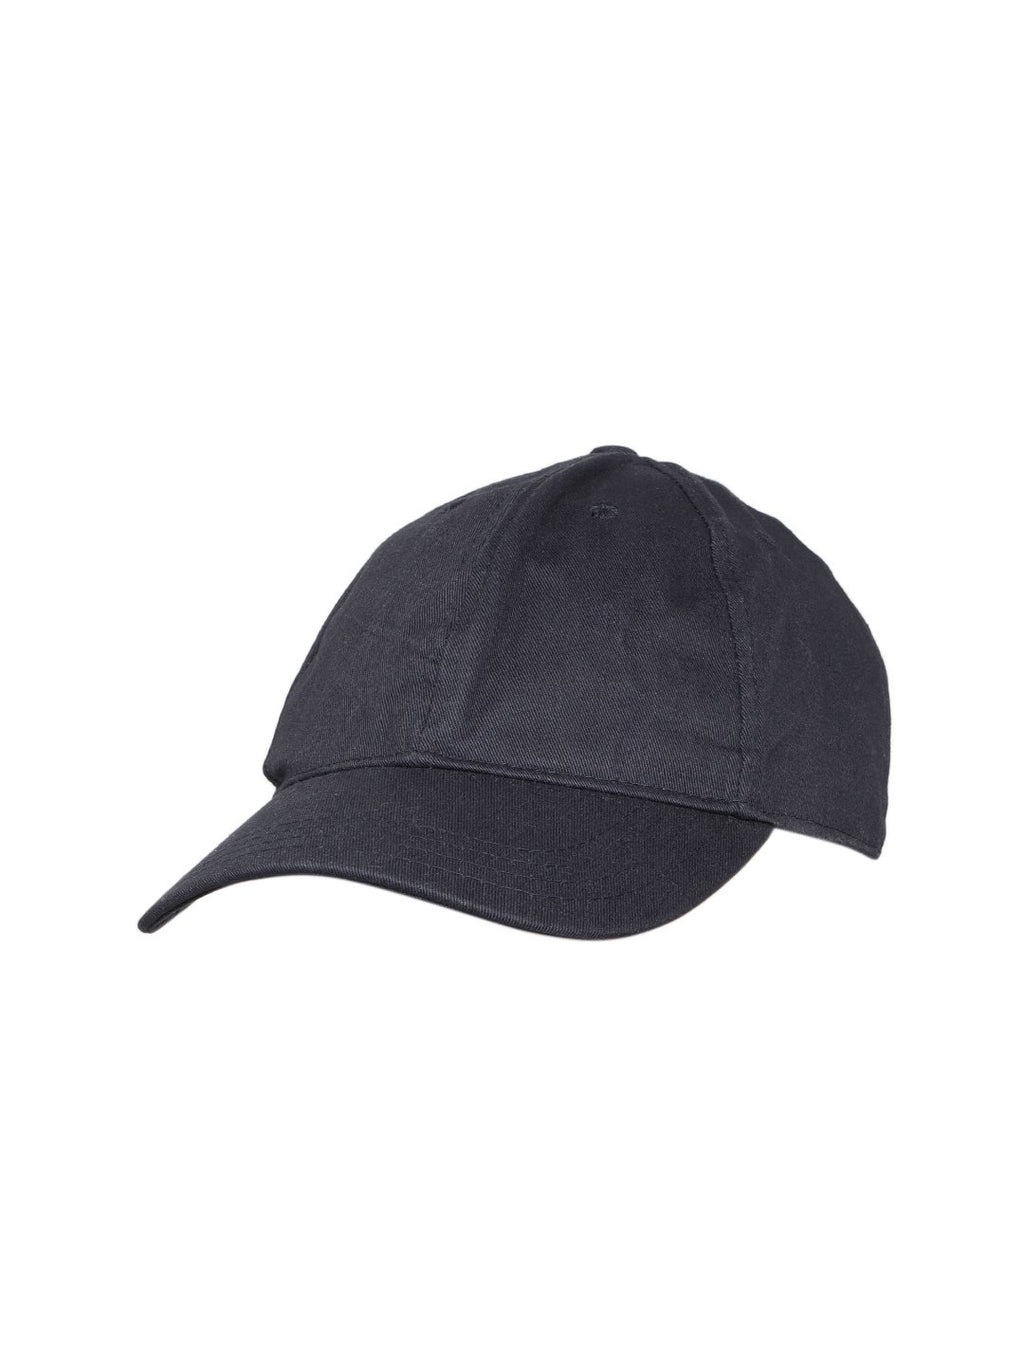 Lazy panda navy blue baseball cap